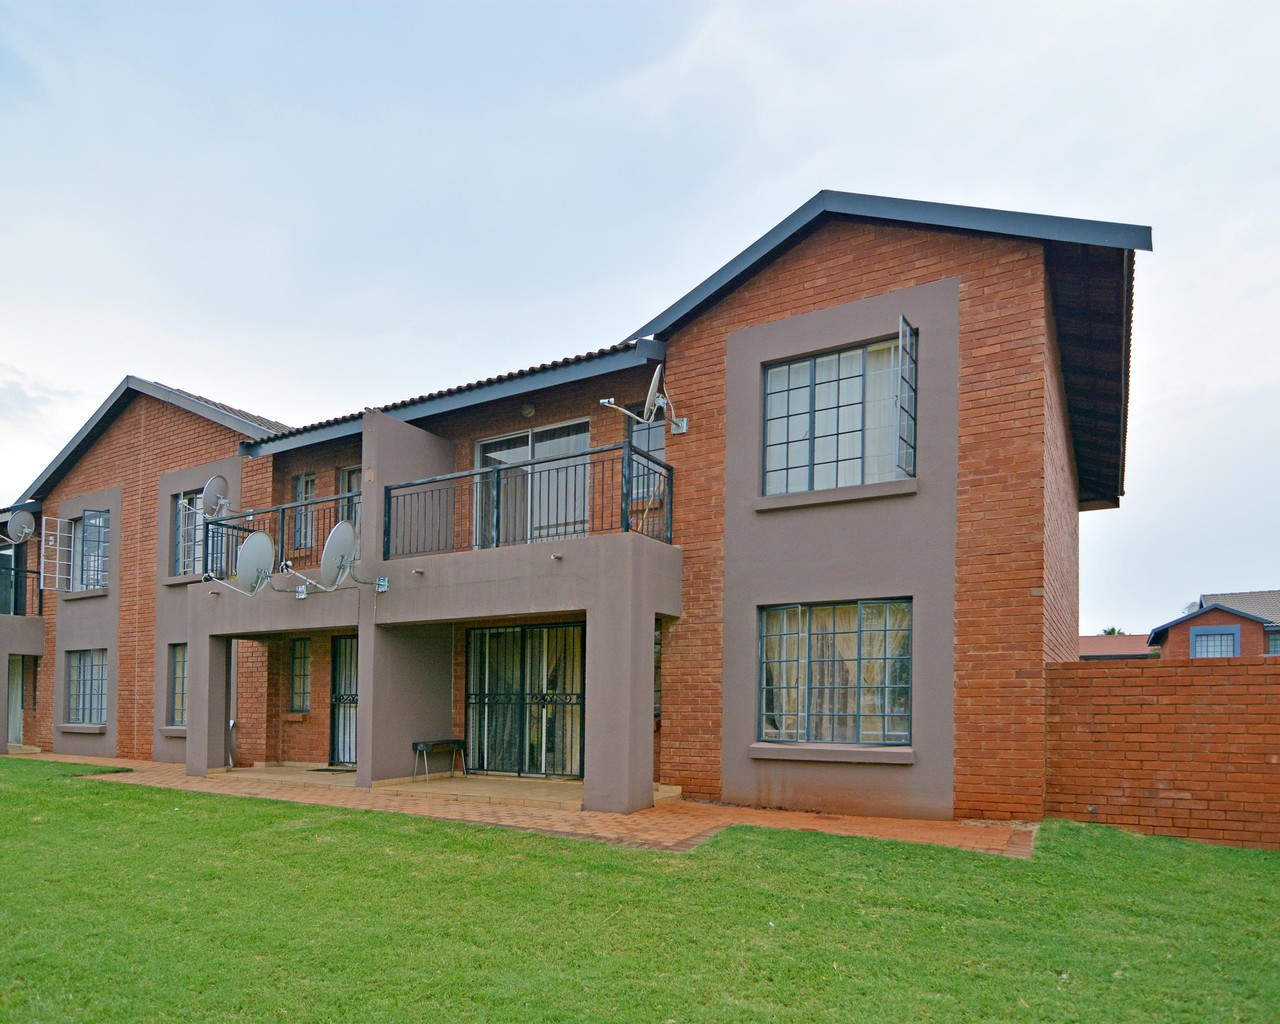 2 Bedroom Apartment To Let In Pretoria North Ihs Property Management